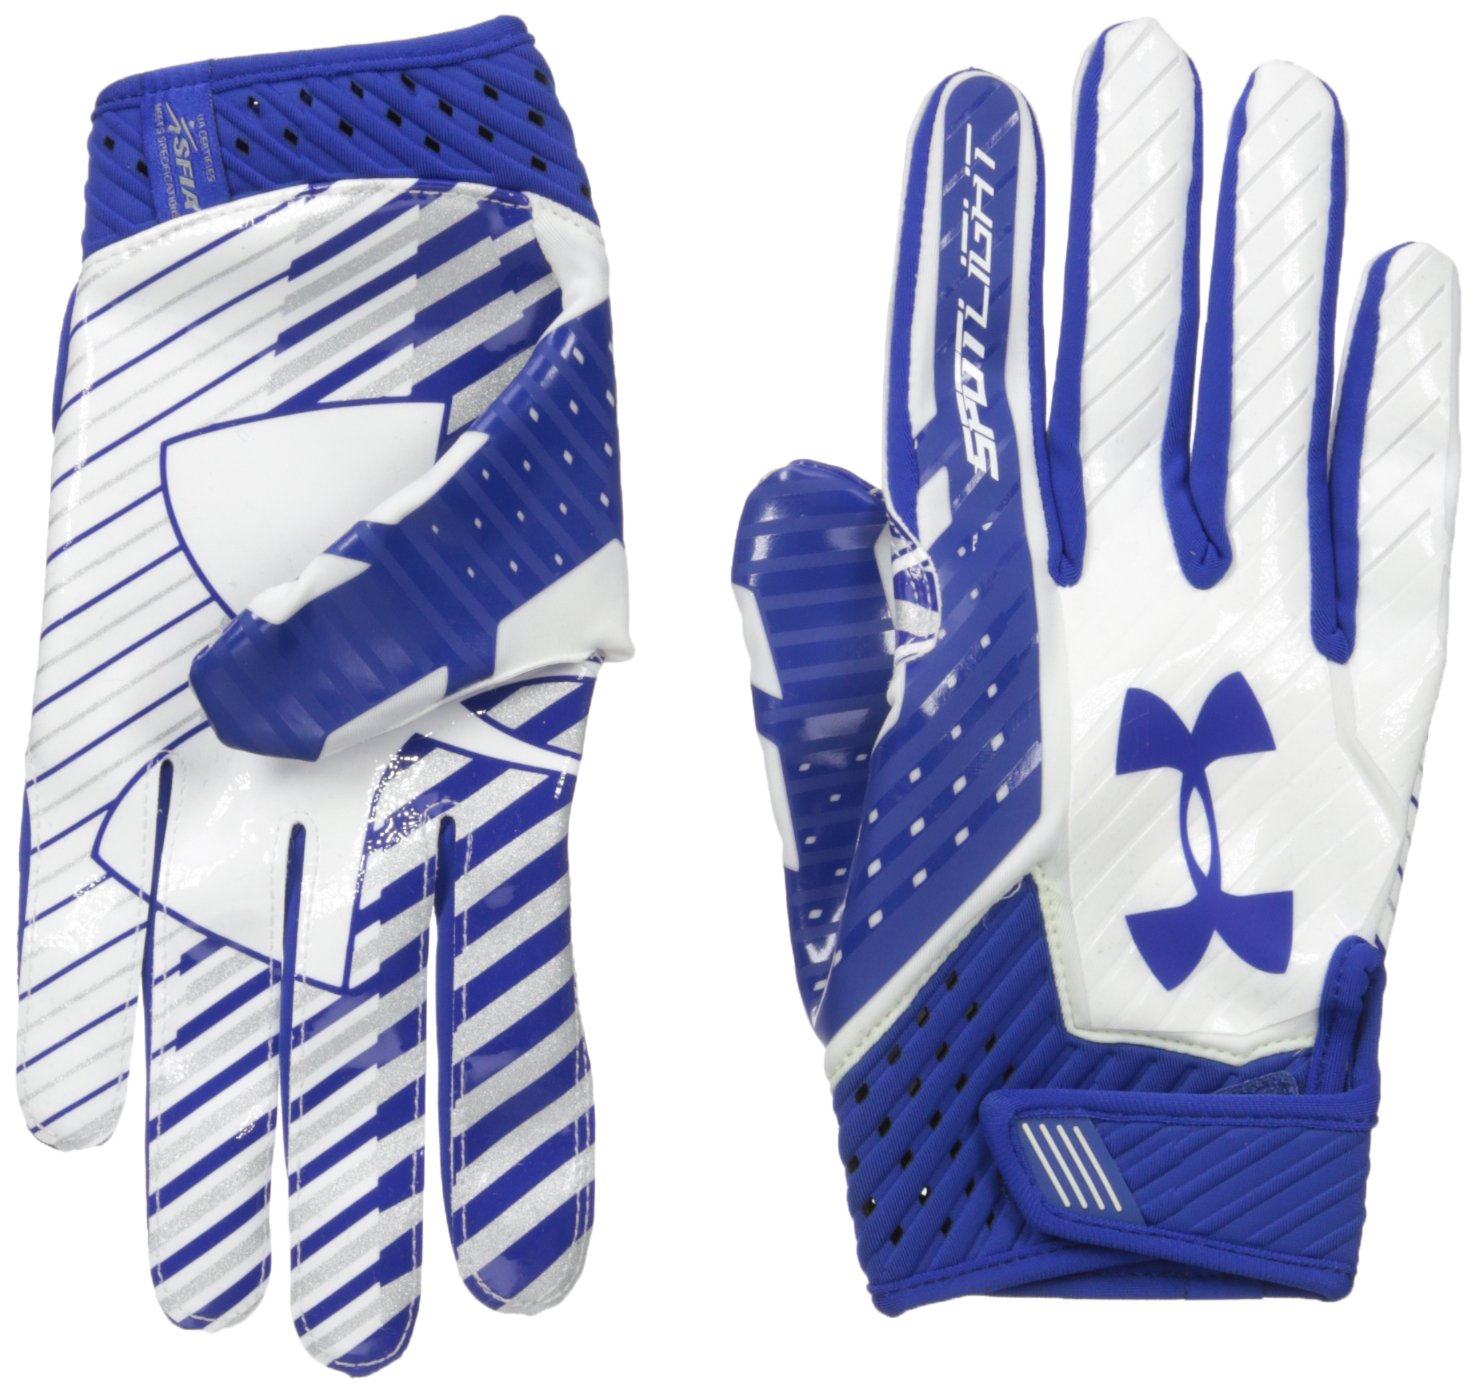 Under Armour Mens Spotlight Football Gloves